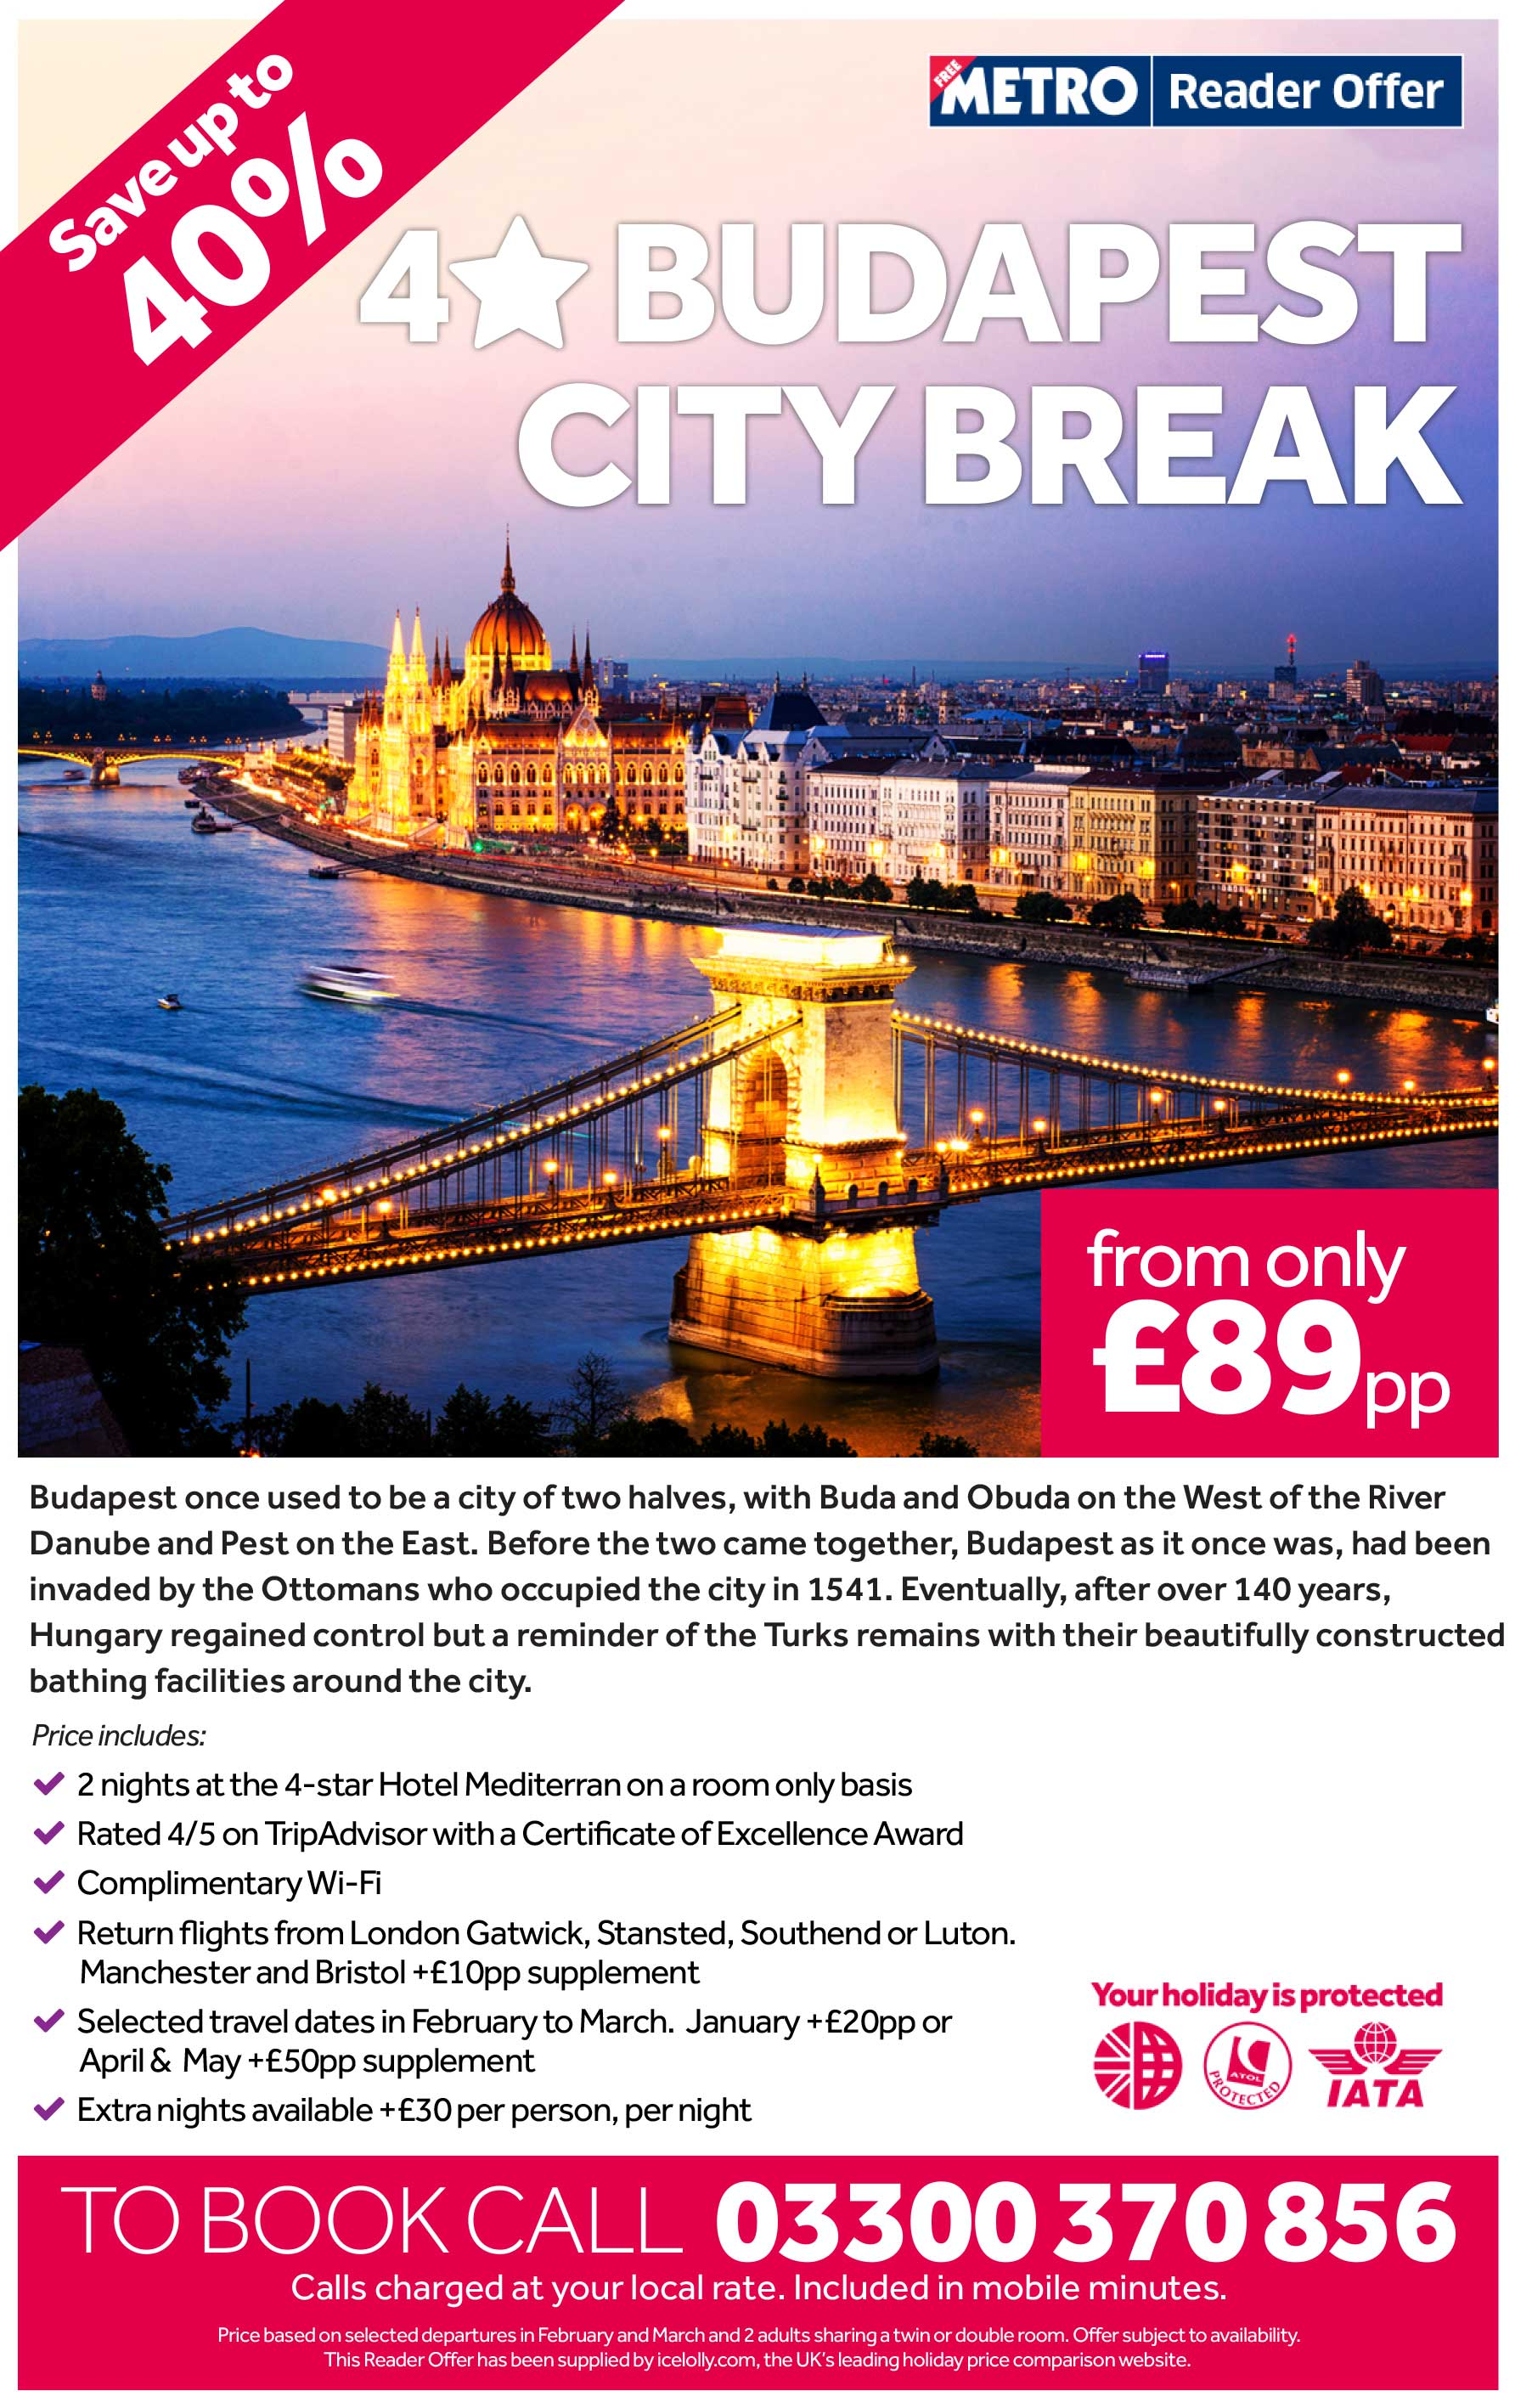 4 Star Budapest City Break